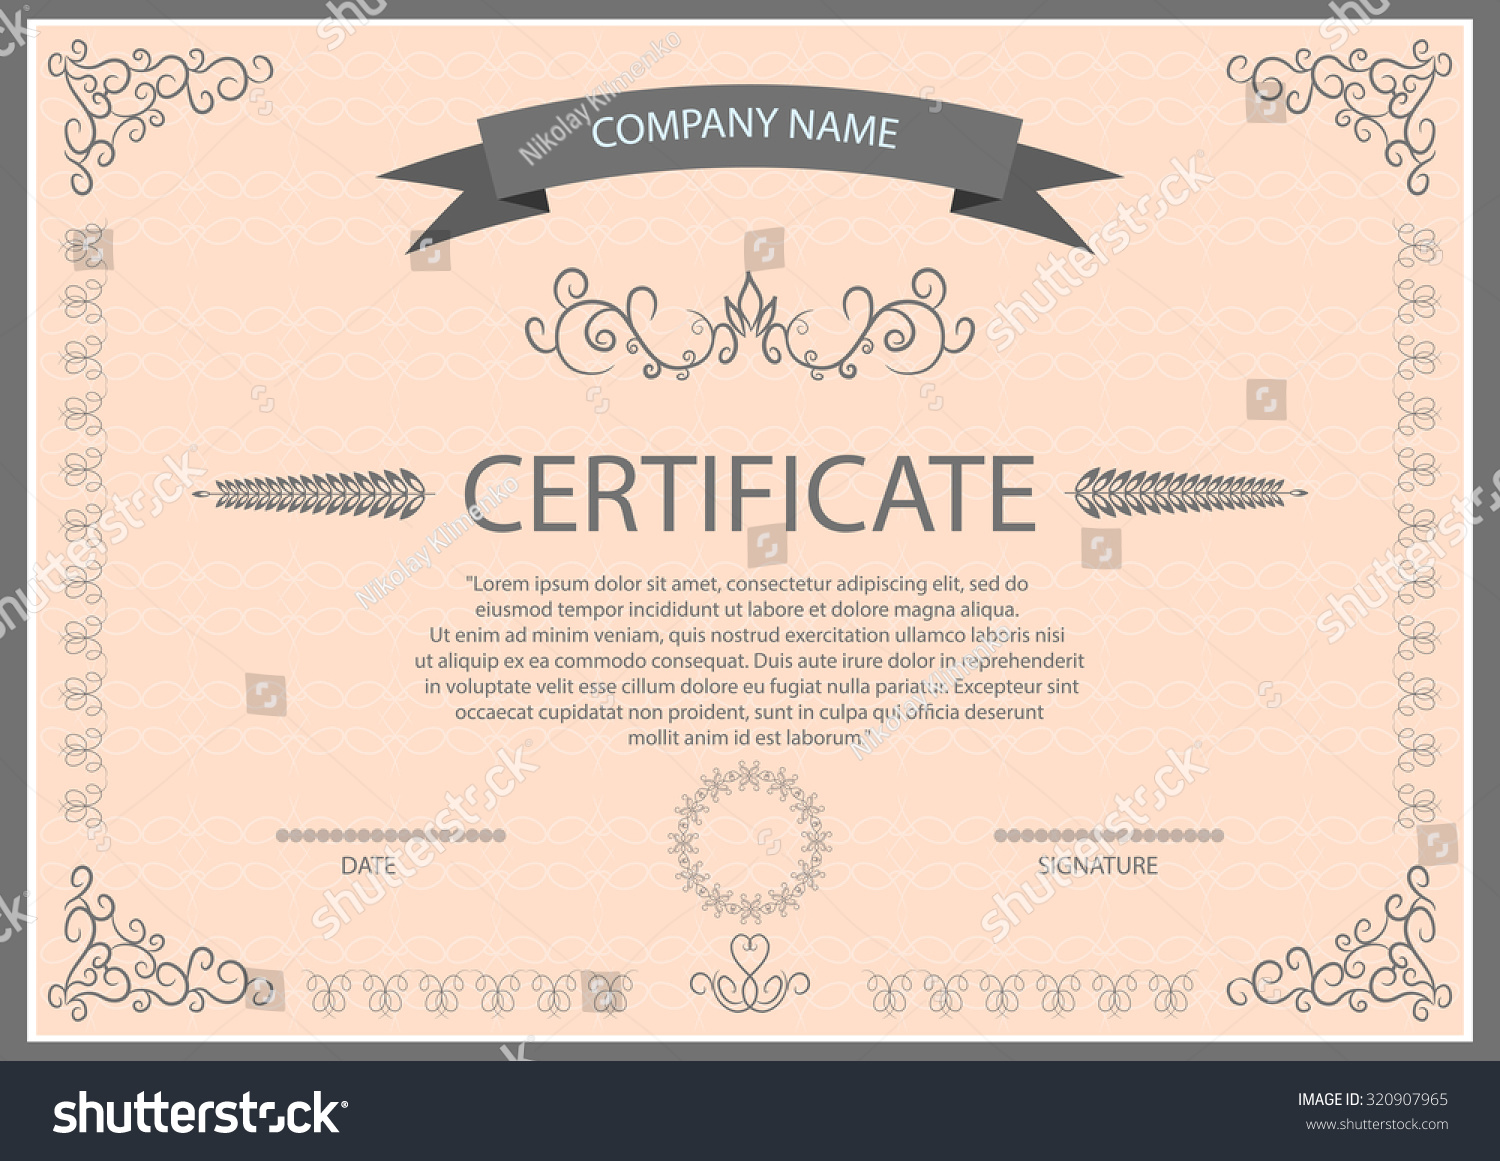 Certificate template eps images certificate design and template vector certificate template eps 10 illustration stock vector xflitez Gallery